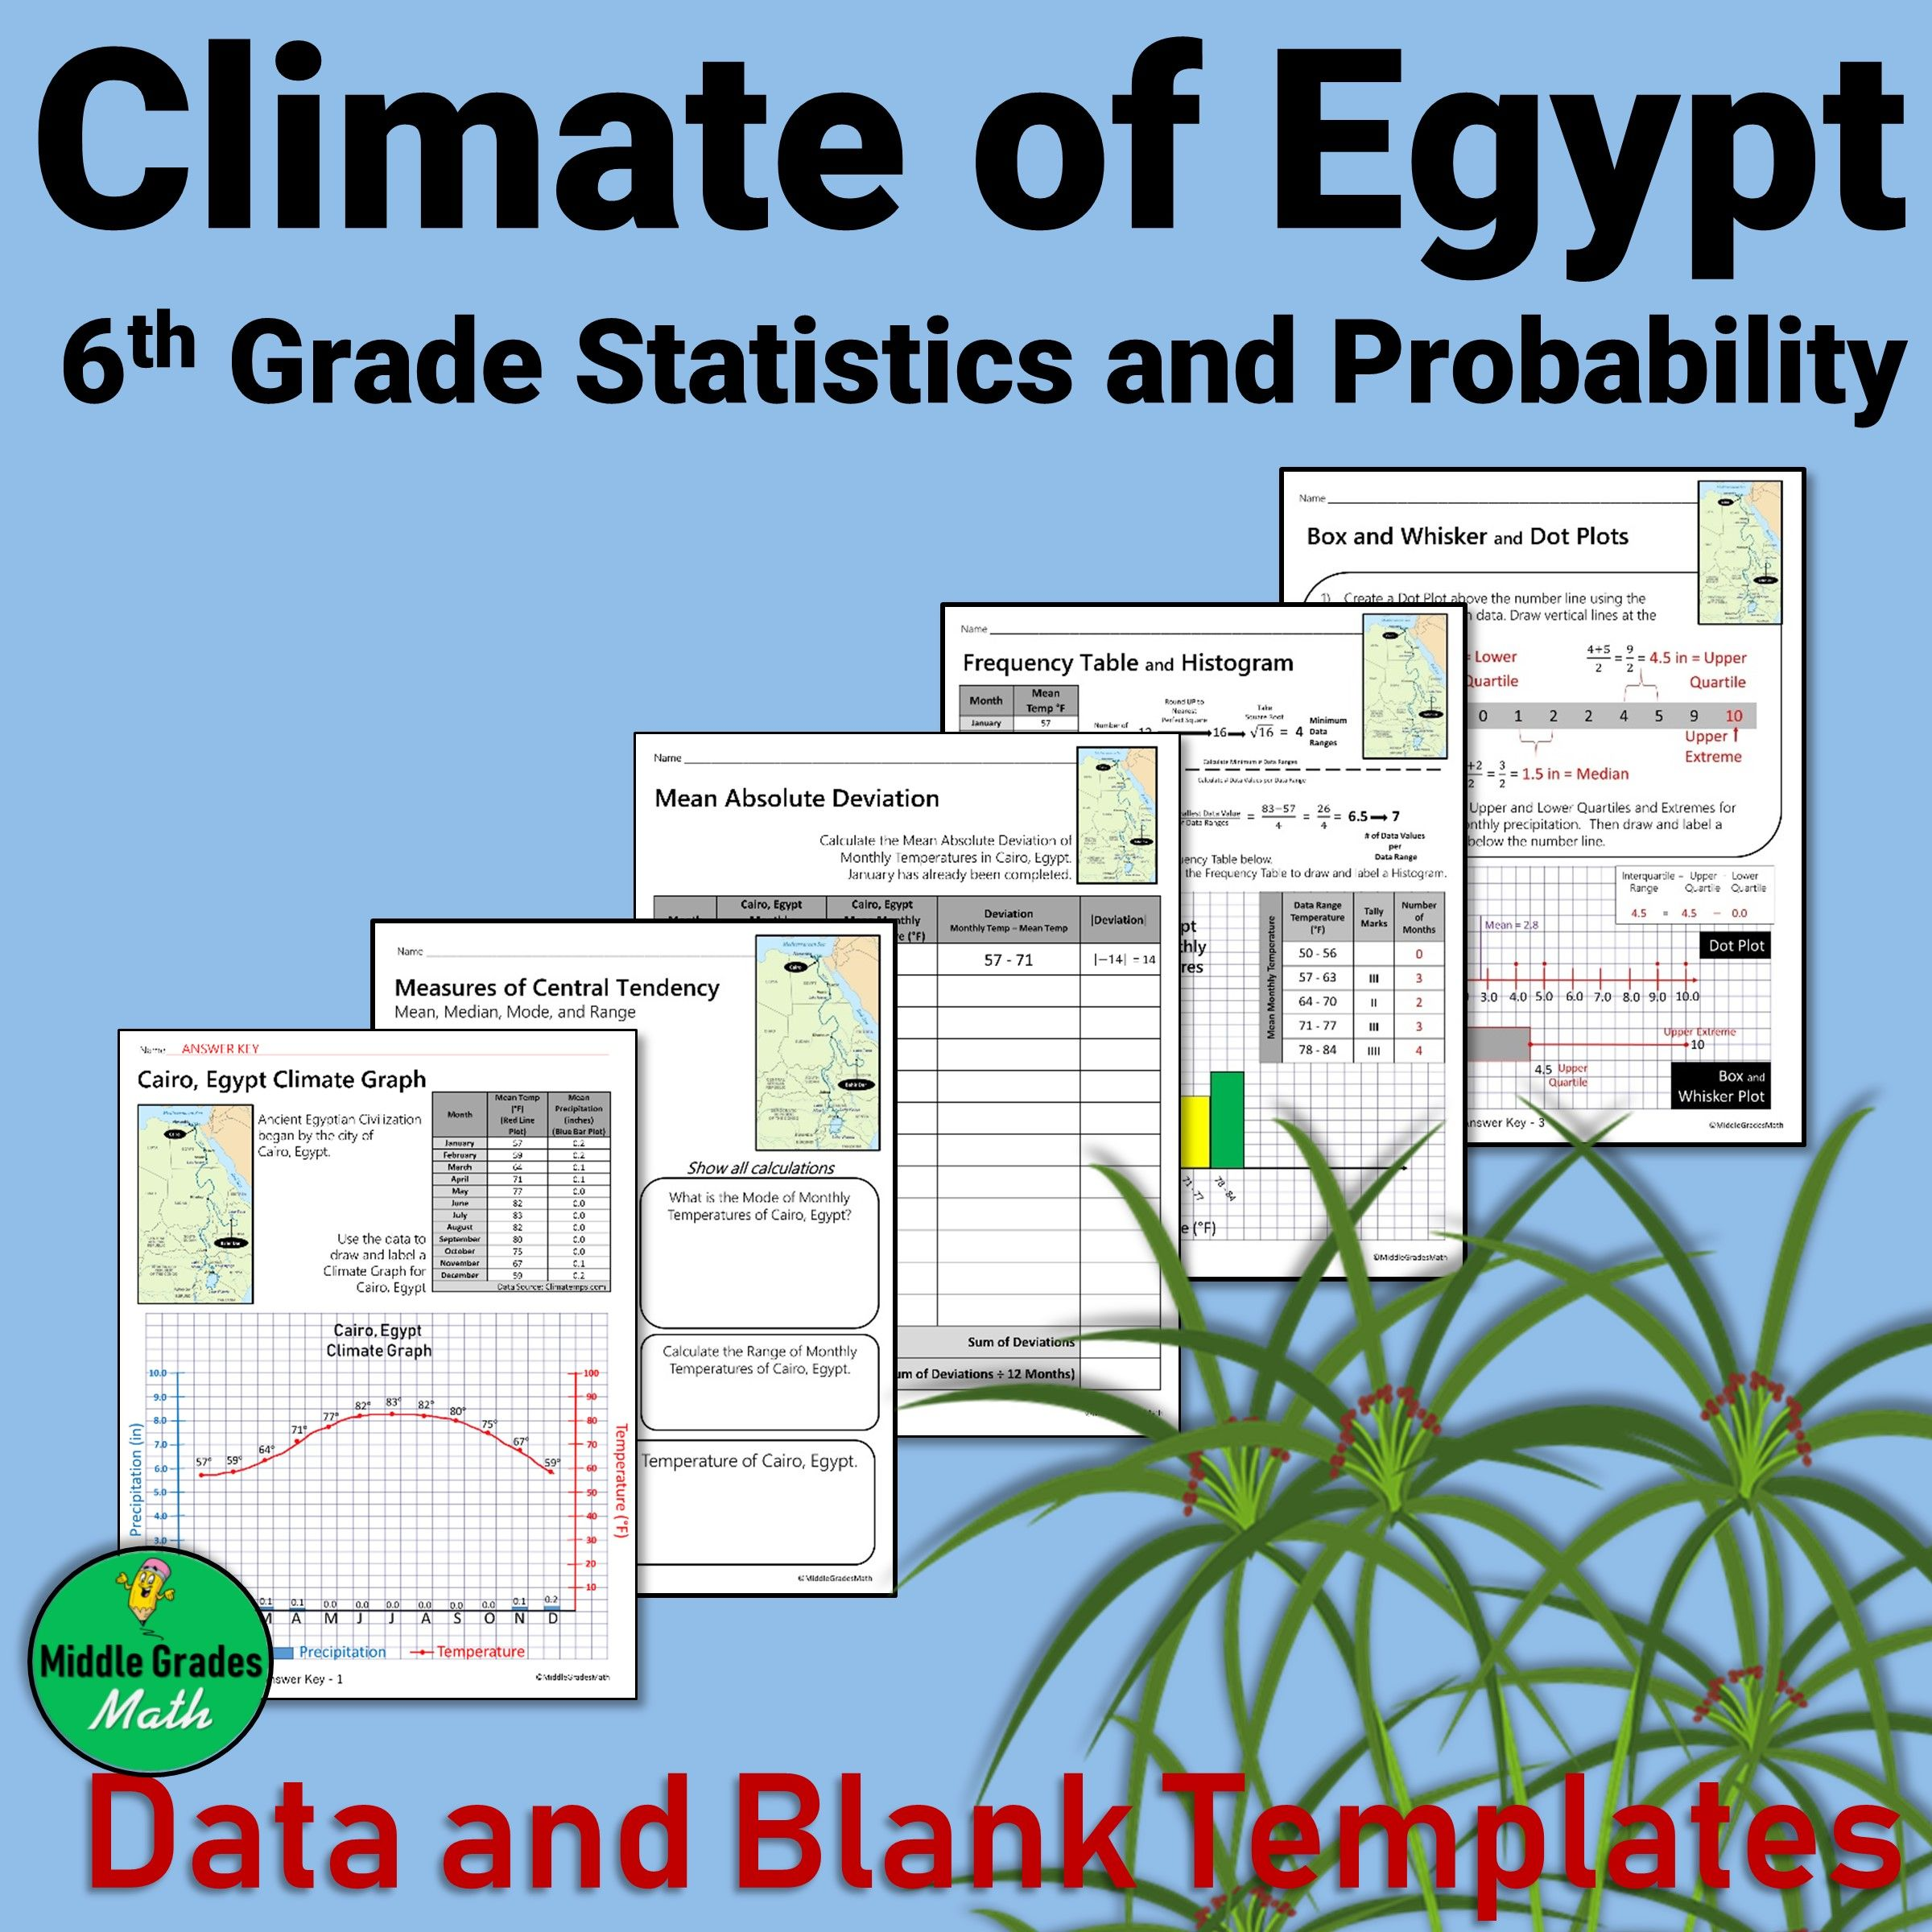 Climate Of Egypt 6th Grade Statistics And Probability Probability Lessons 6th Grade Social Studies Probability Activities